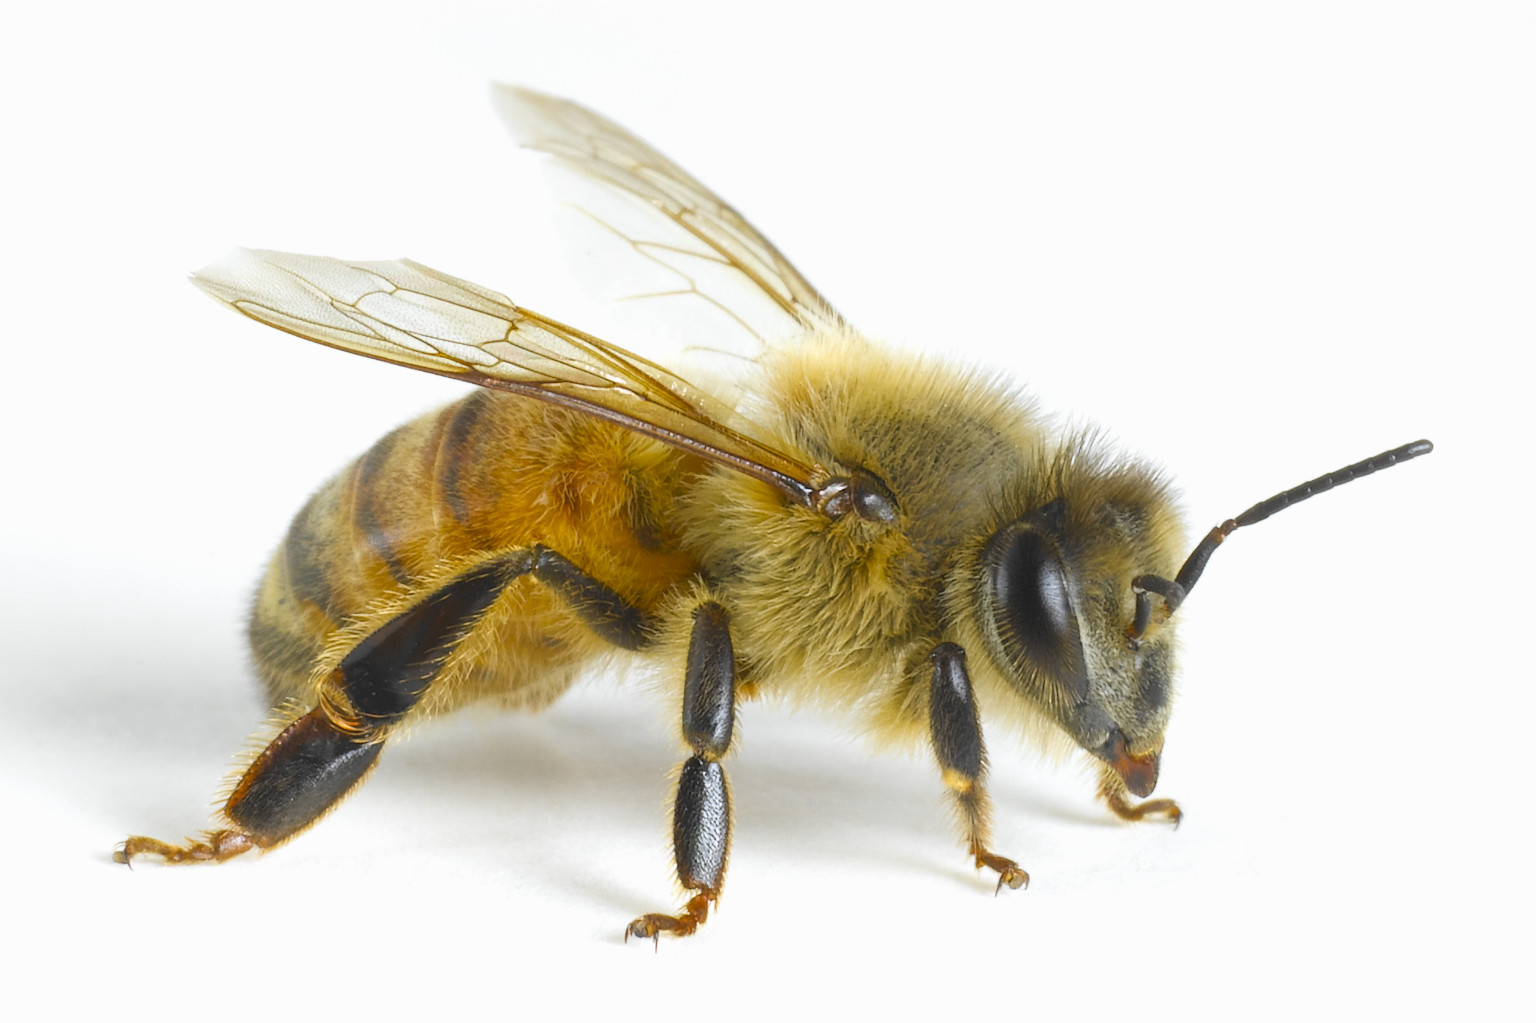 Bee Sting Therapy China: Treatment For Illnesses Causes Buzz Bee